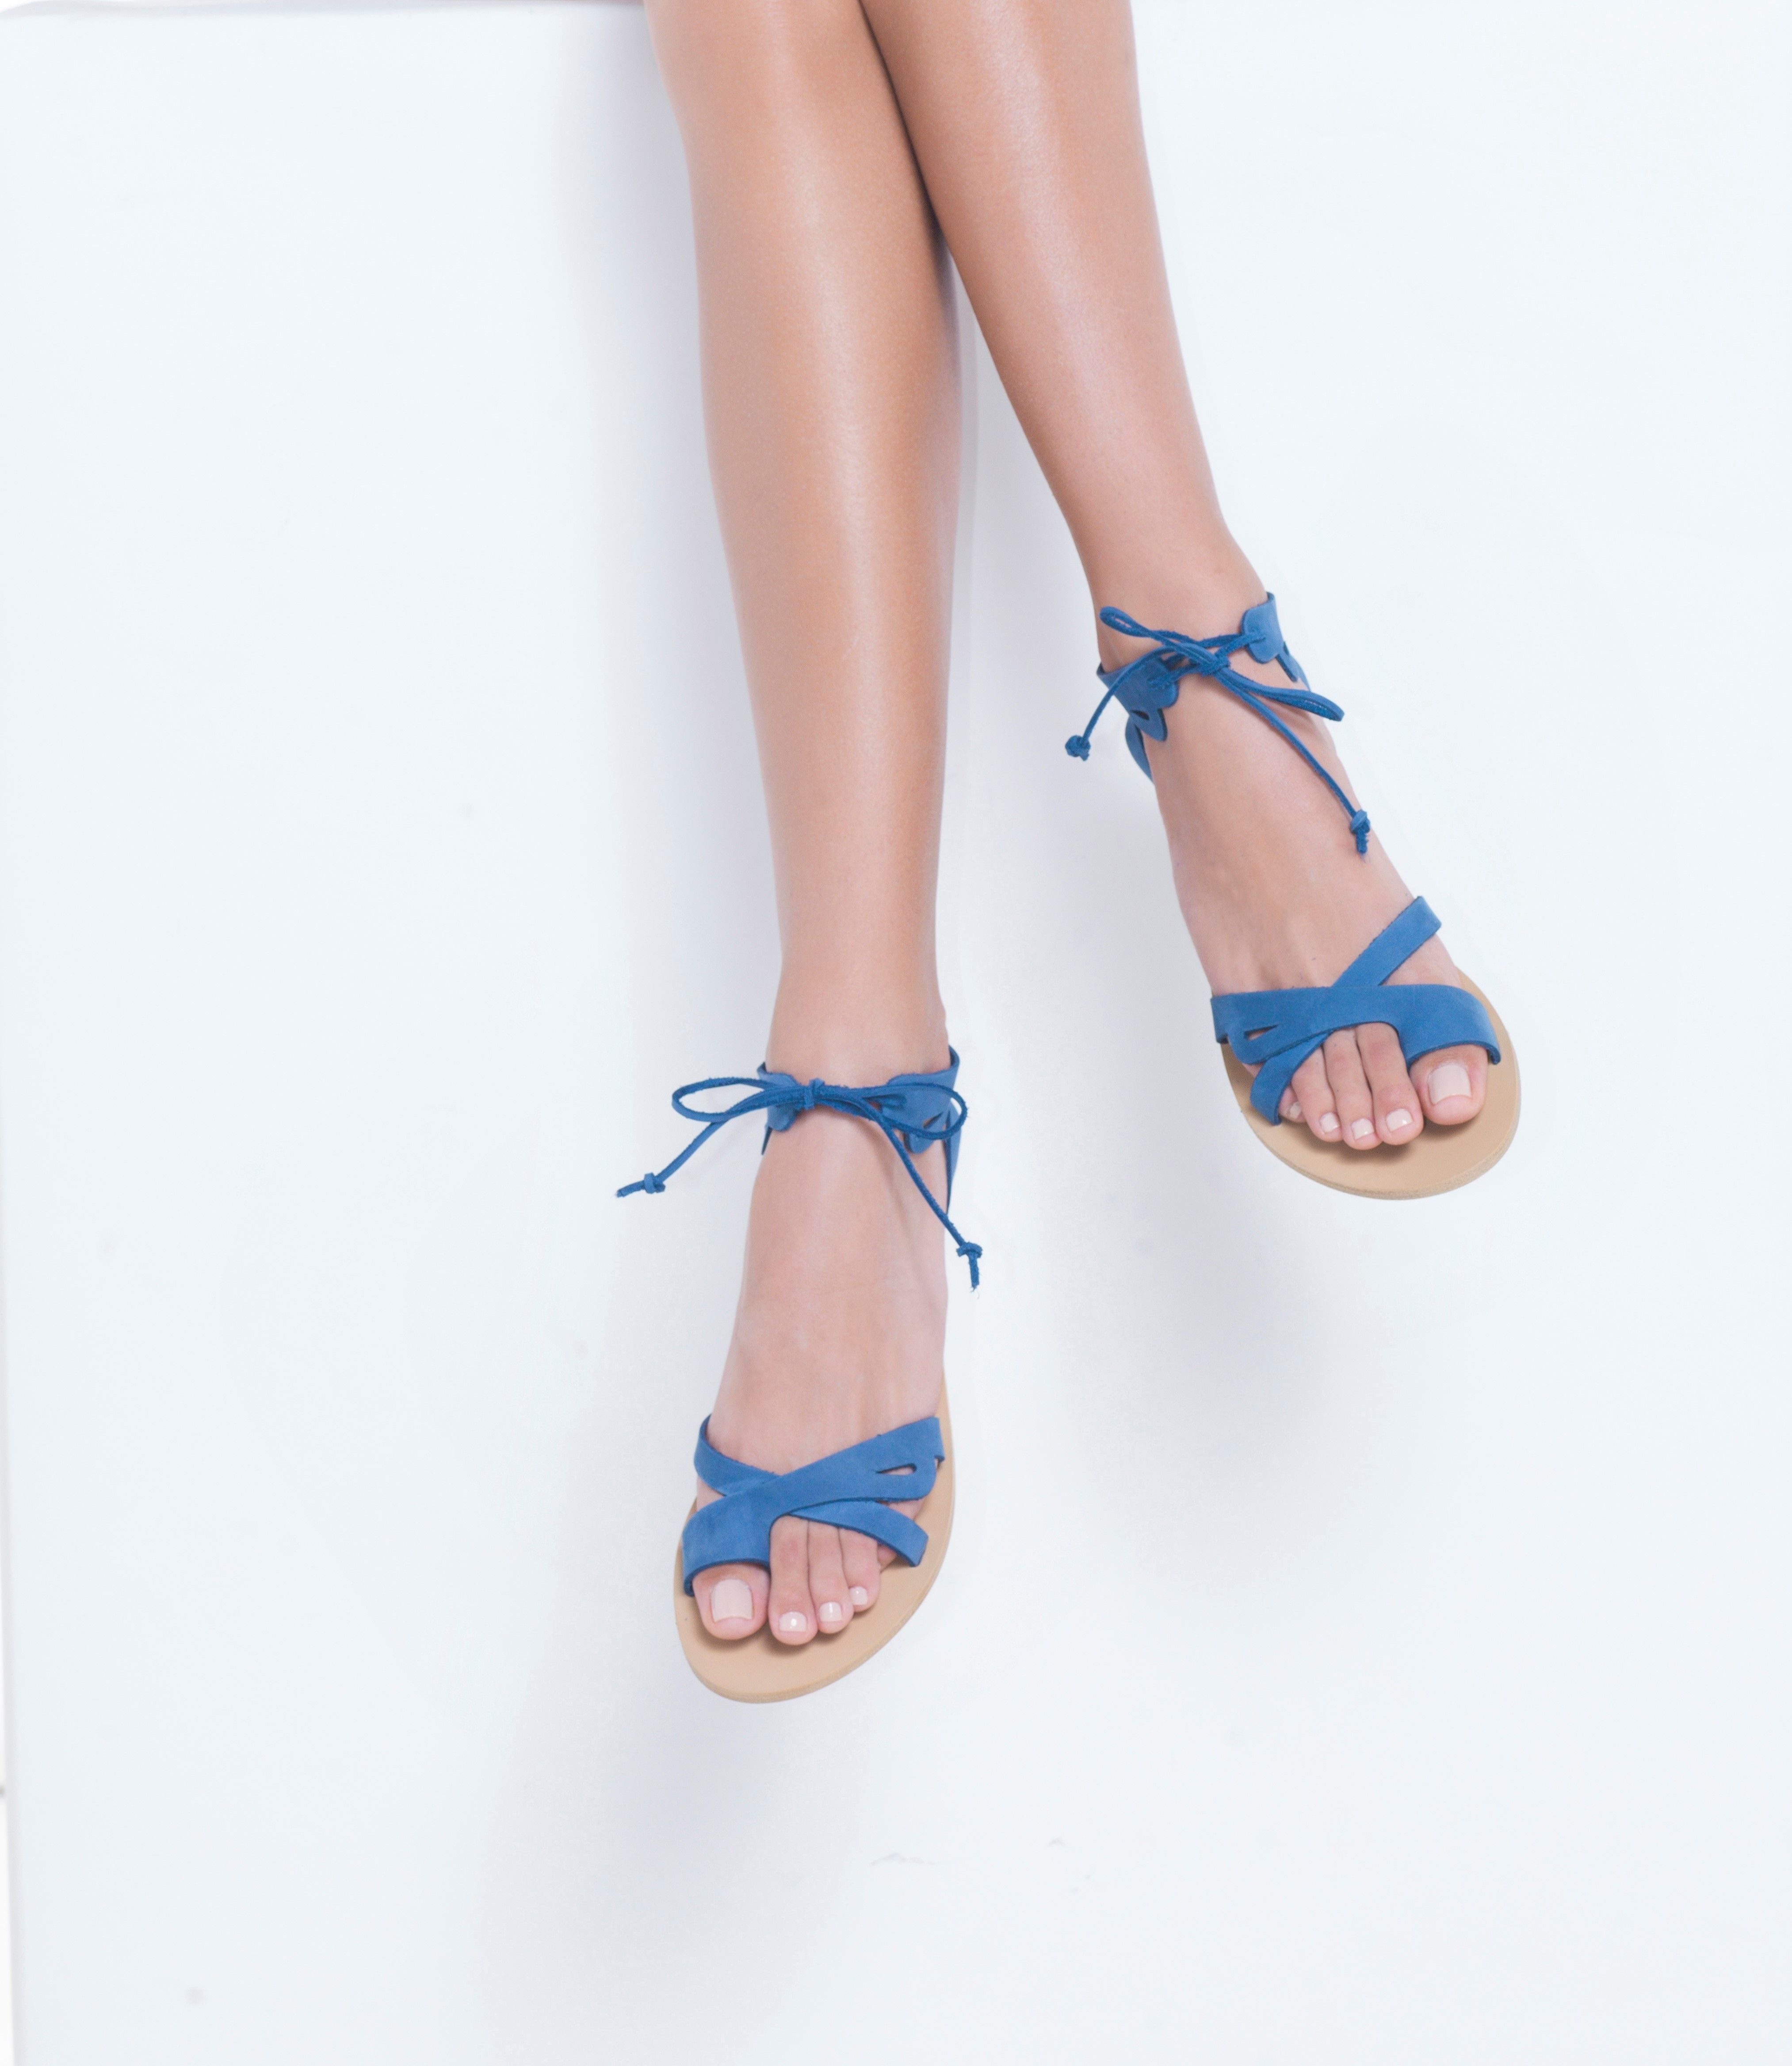 1052e9dcc639a  sandals  AncientGreece  shoes  women  handcrafted  luxuryGreeksandals   quality  leather  picoftheday  selfie  follow  followme  fashion  happy   me  cute ...